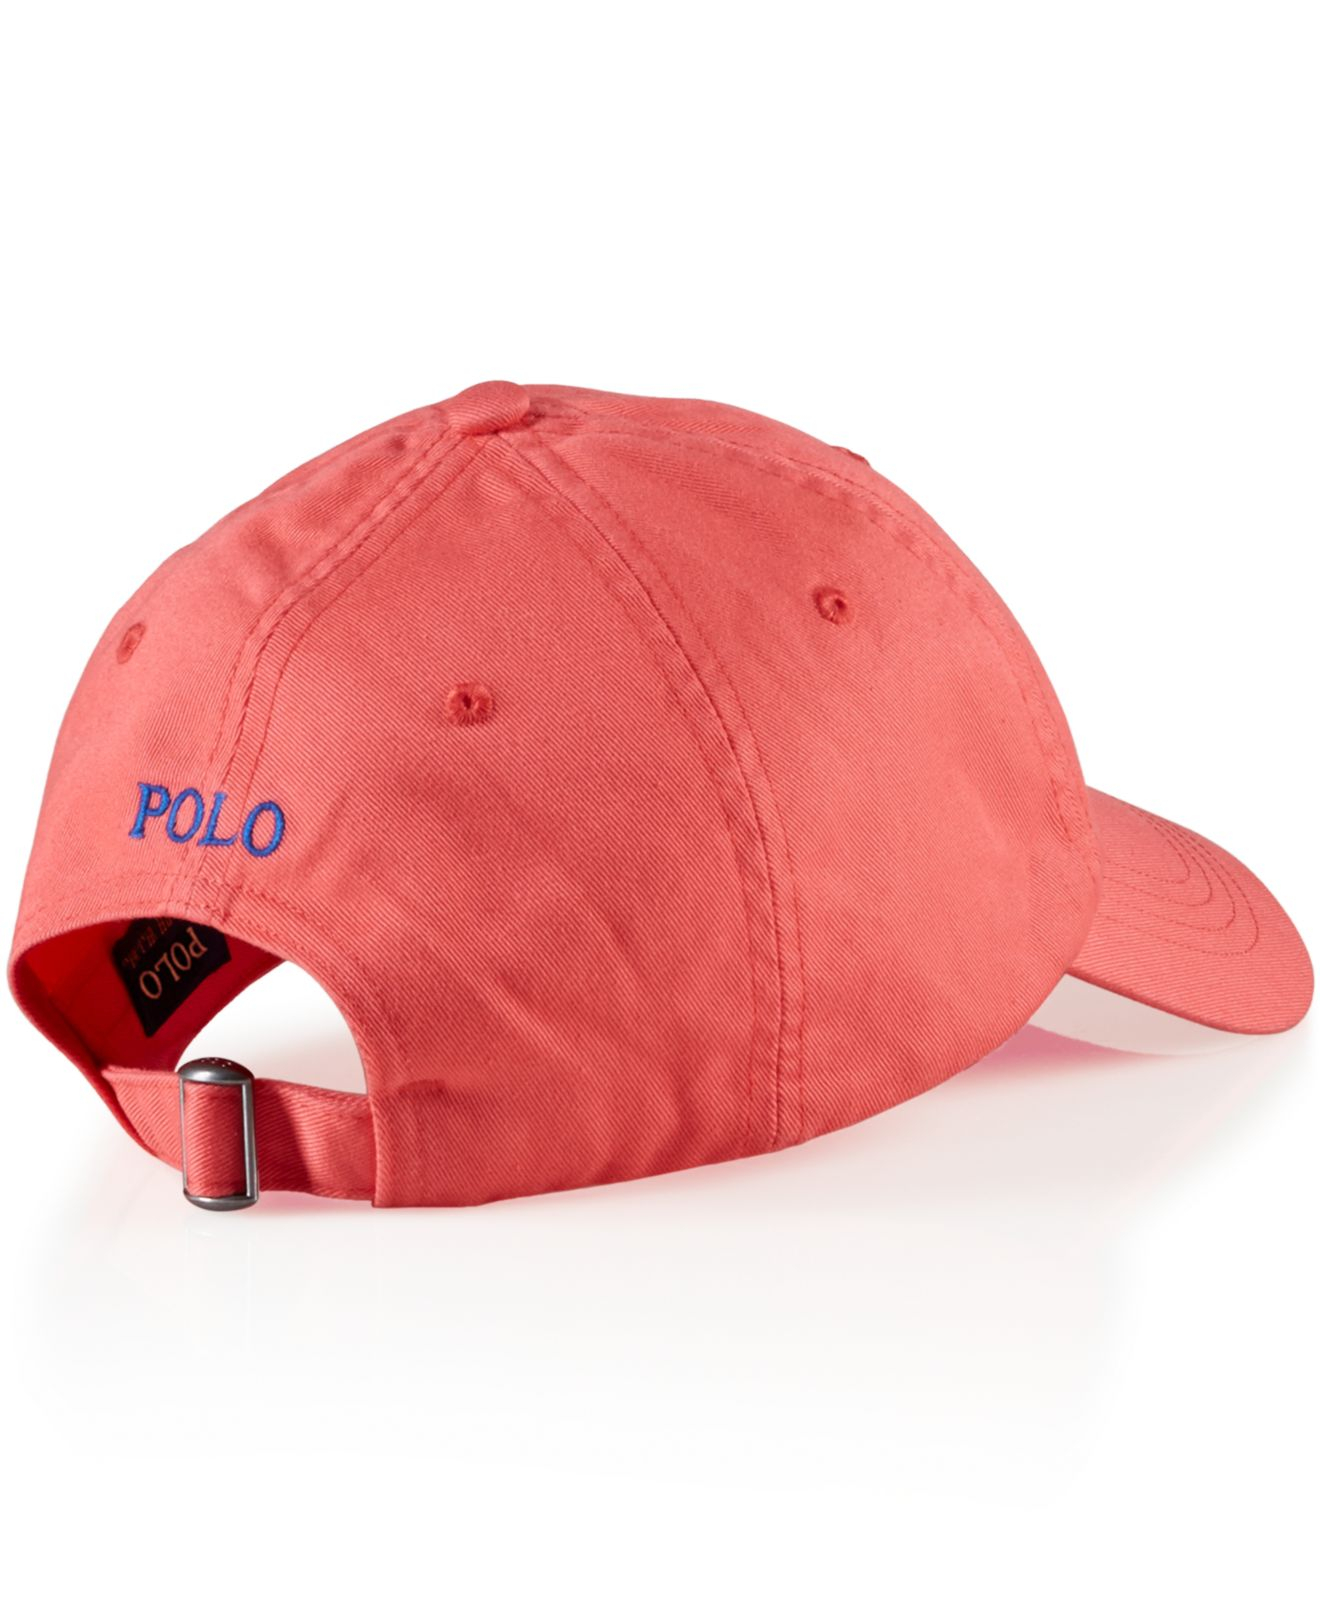 Lyst - Polo Ralph Lauren Classic Chino Sports Cap in Pink for Men ea32cbd3226